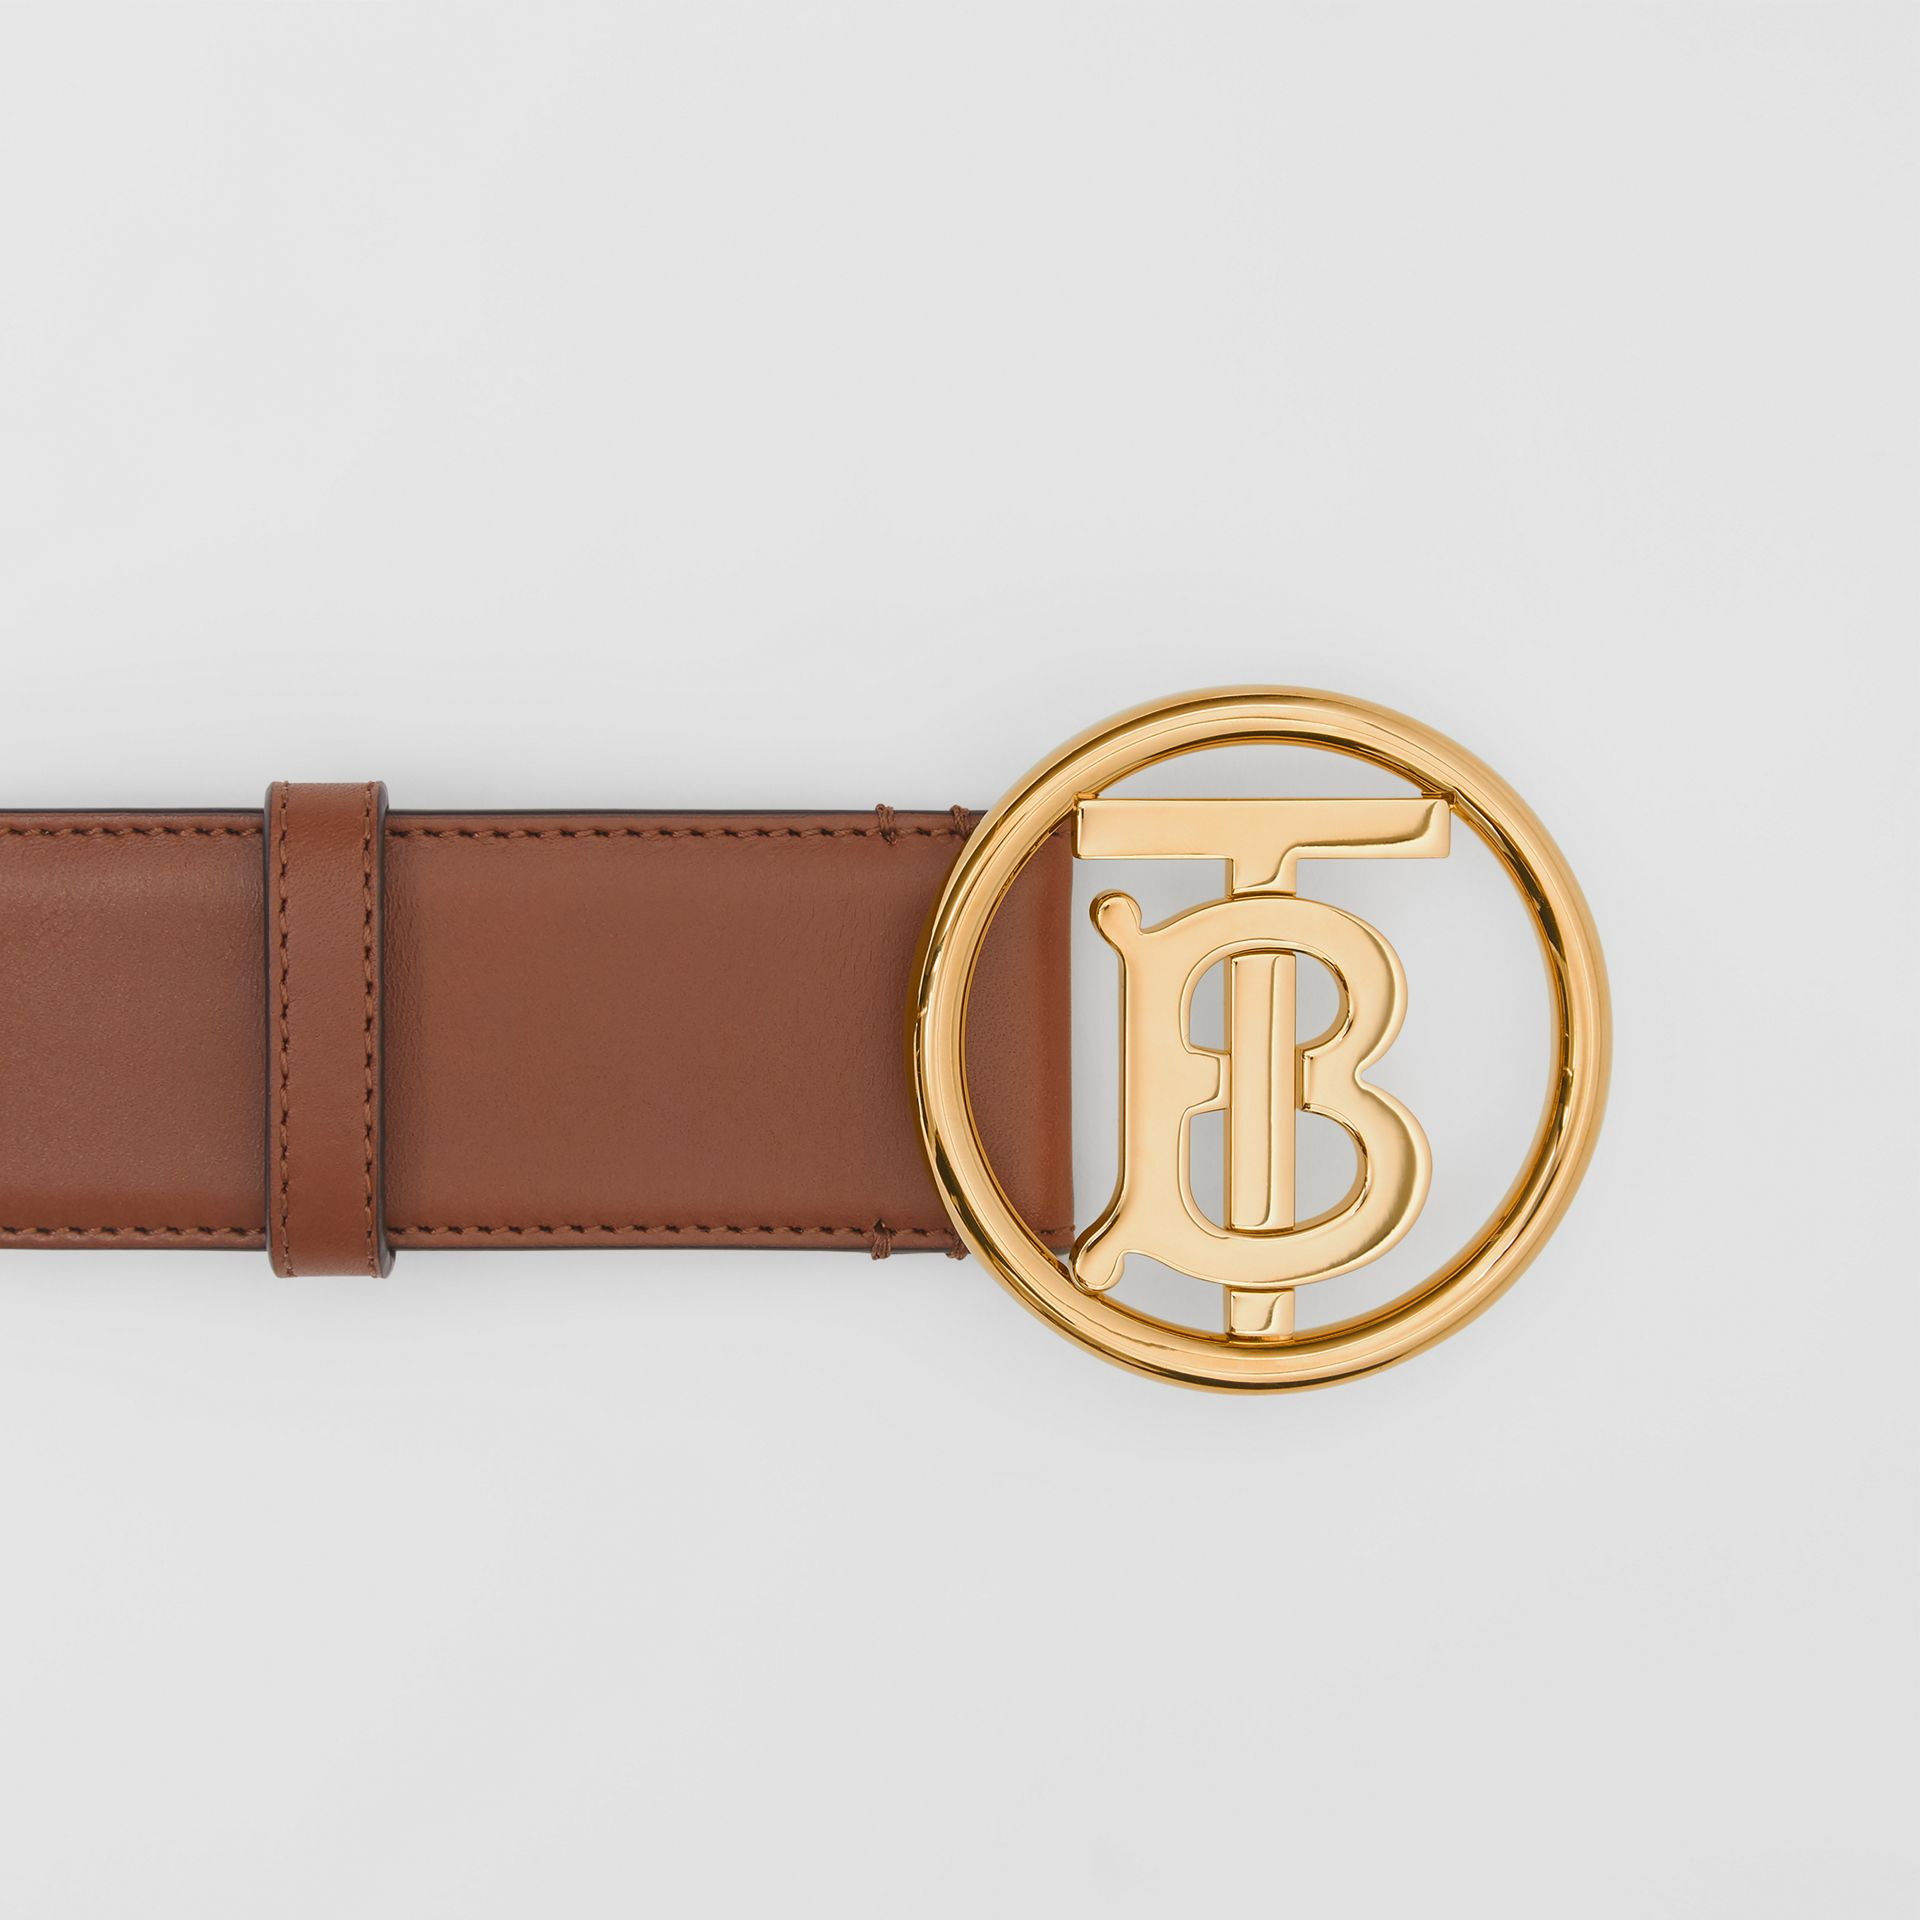 Monogram Motif Leather Belt in Tan/antique Dark Brass - Women | Burberry Hong Kong S.A.R - gallery image 1